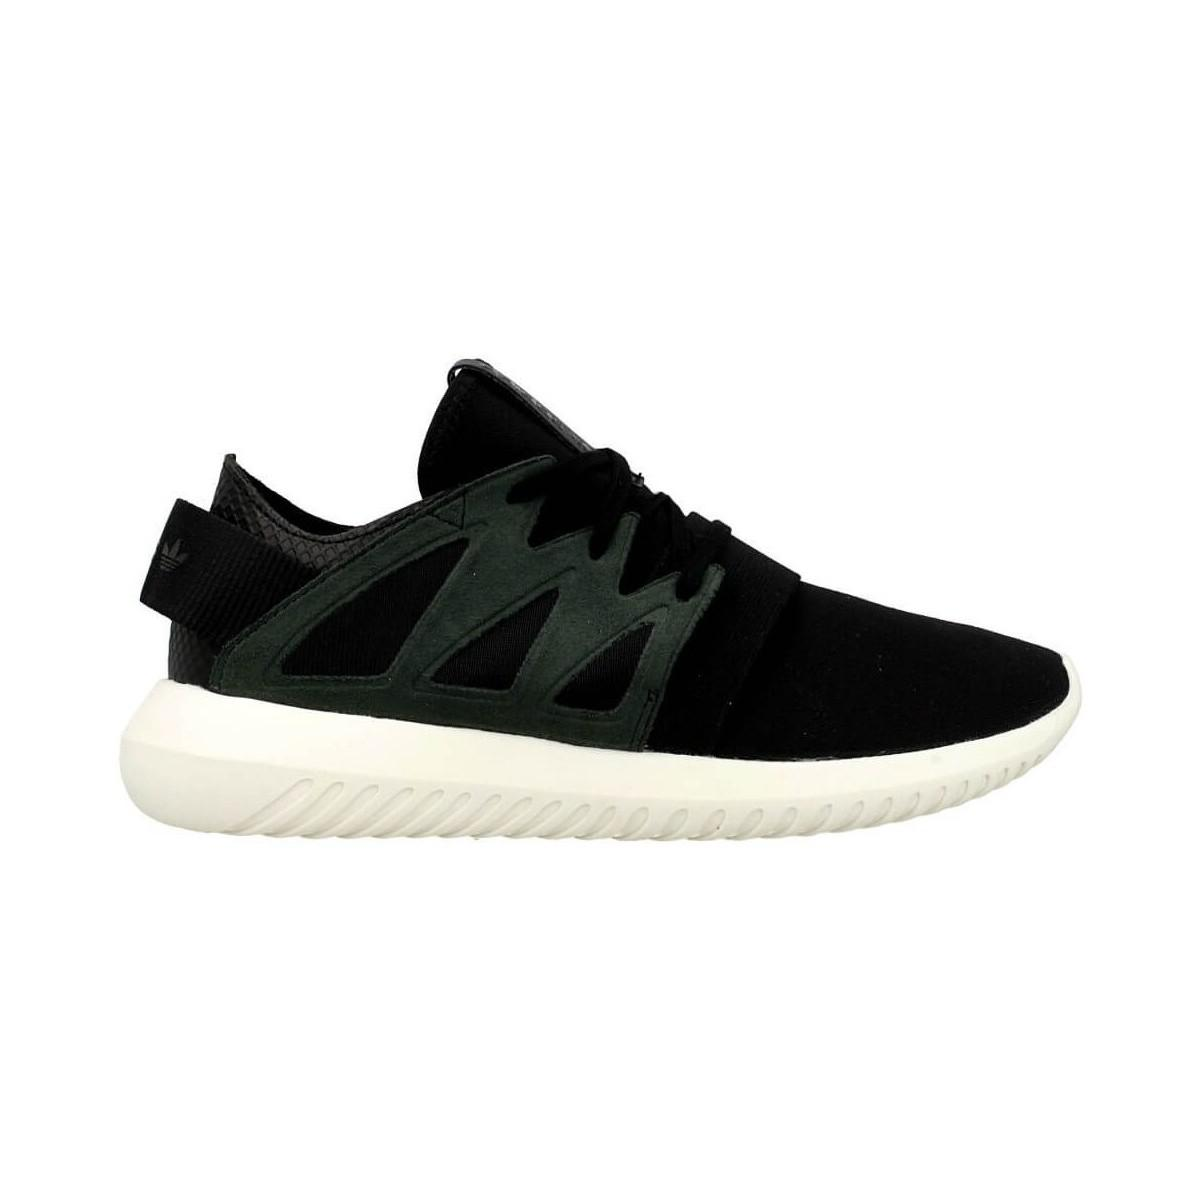 competitive price 98617 a992c Adidas - Tubular Viral W Women s Shoes (trainers) In Black - Lyst. View  fullscreen